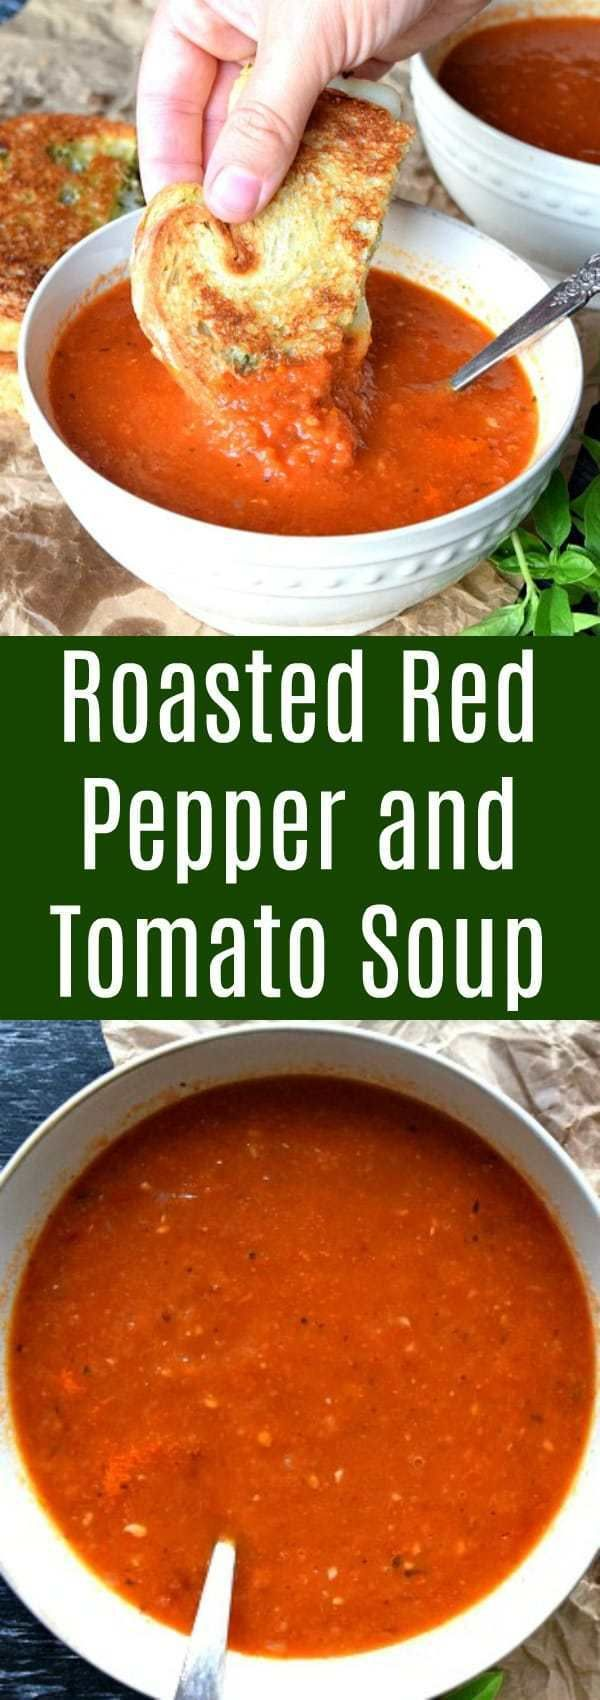 Roasted Red Pepper Tomato Soup The Schmidty Wife Stuffed Peppers Roasted Pepper Soup Roasted Tomato Soup